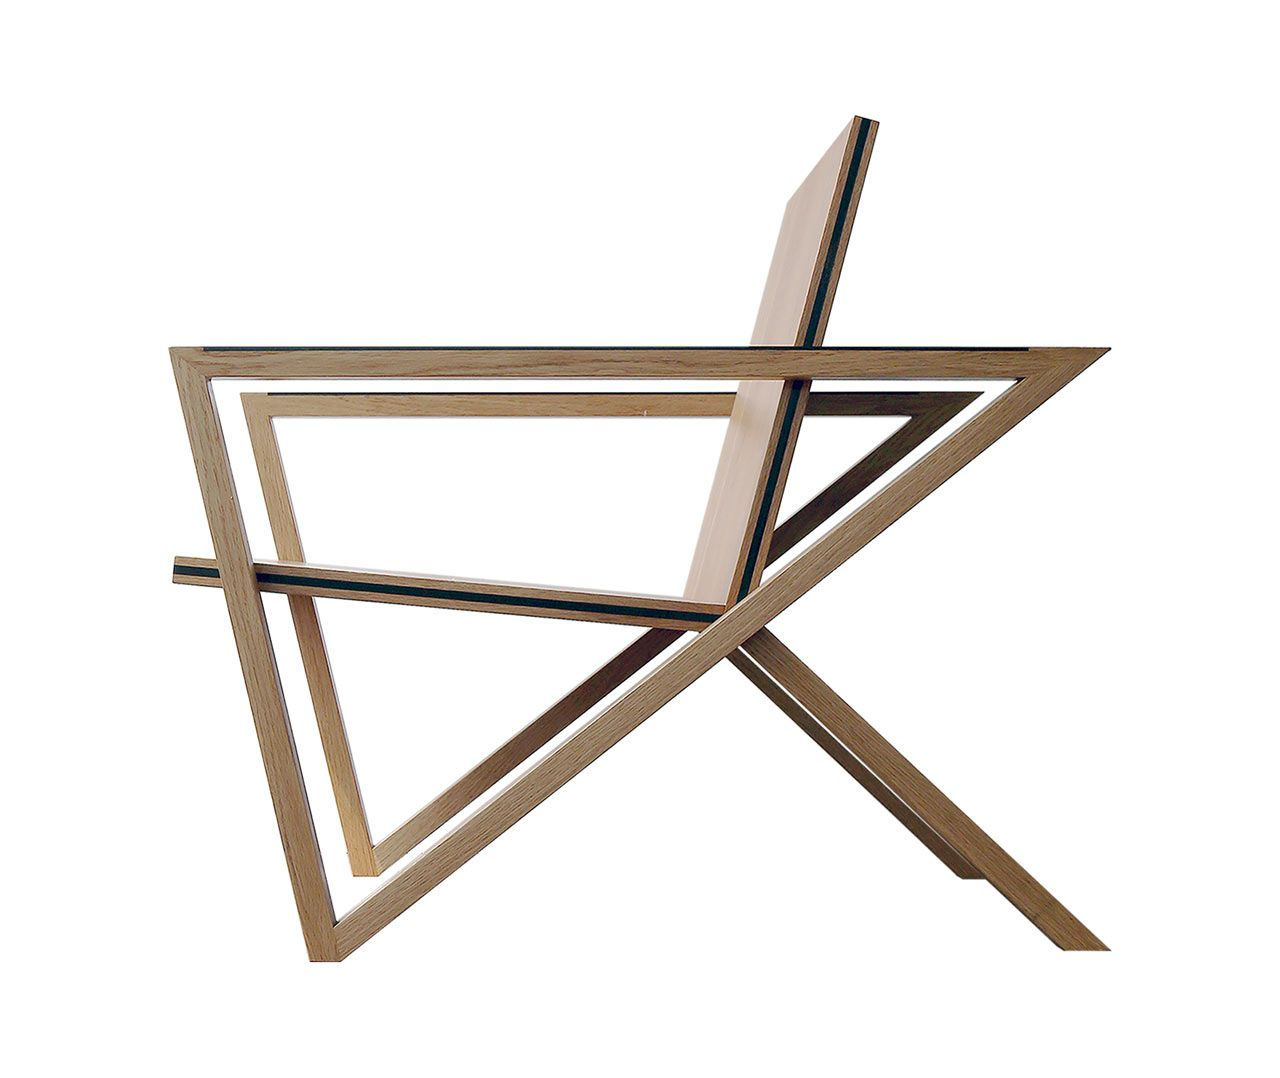 Furniture Design Competition 2017 a' design awards & competition 2017 winners | architecture, chairs